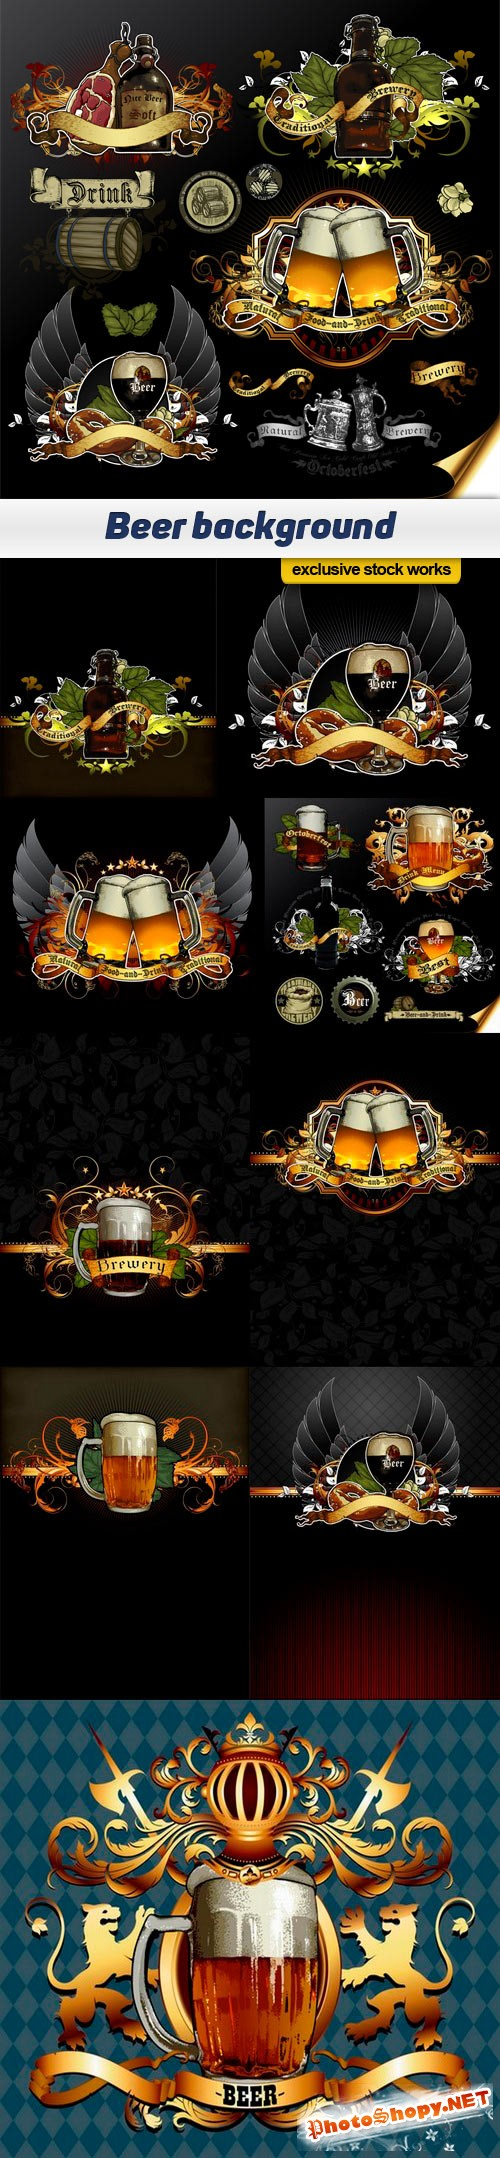 Beer background - 10 EPS